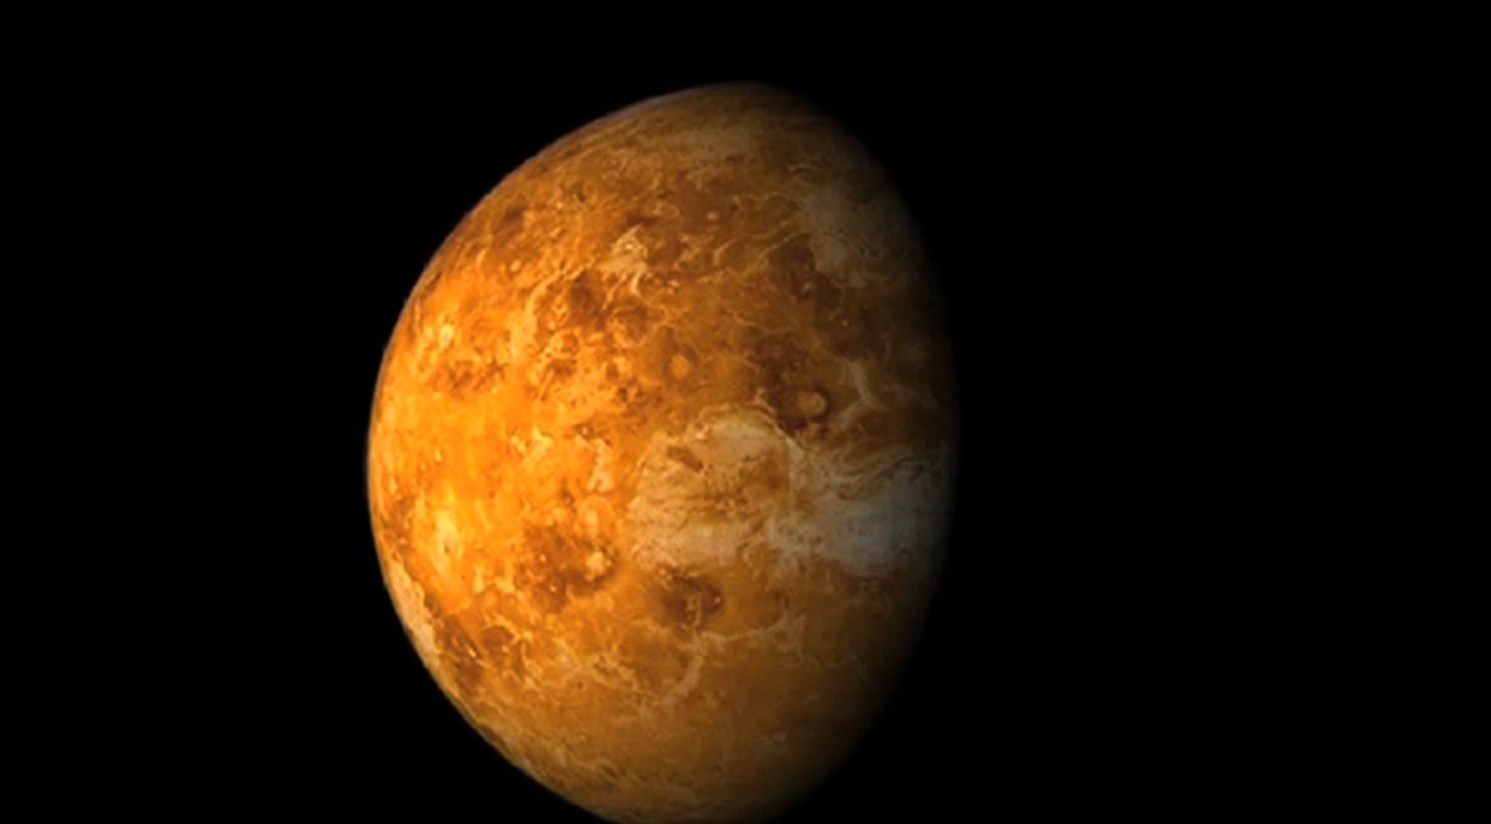 images of venus the planet - photo #25